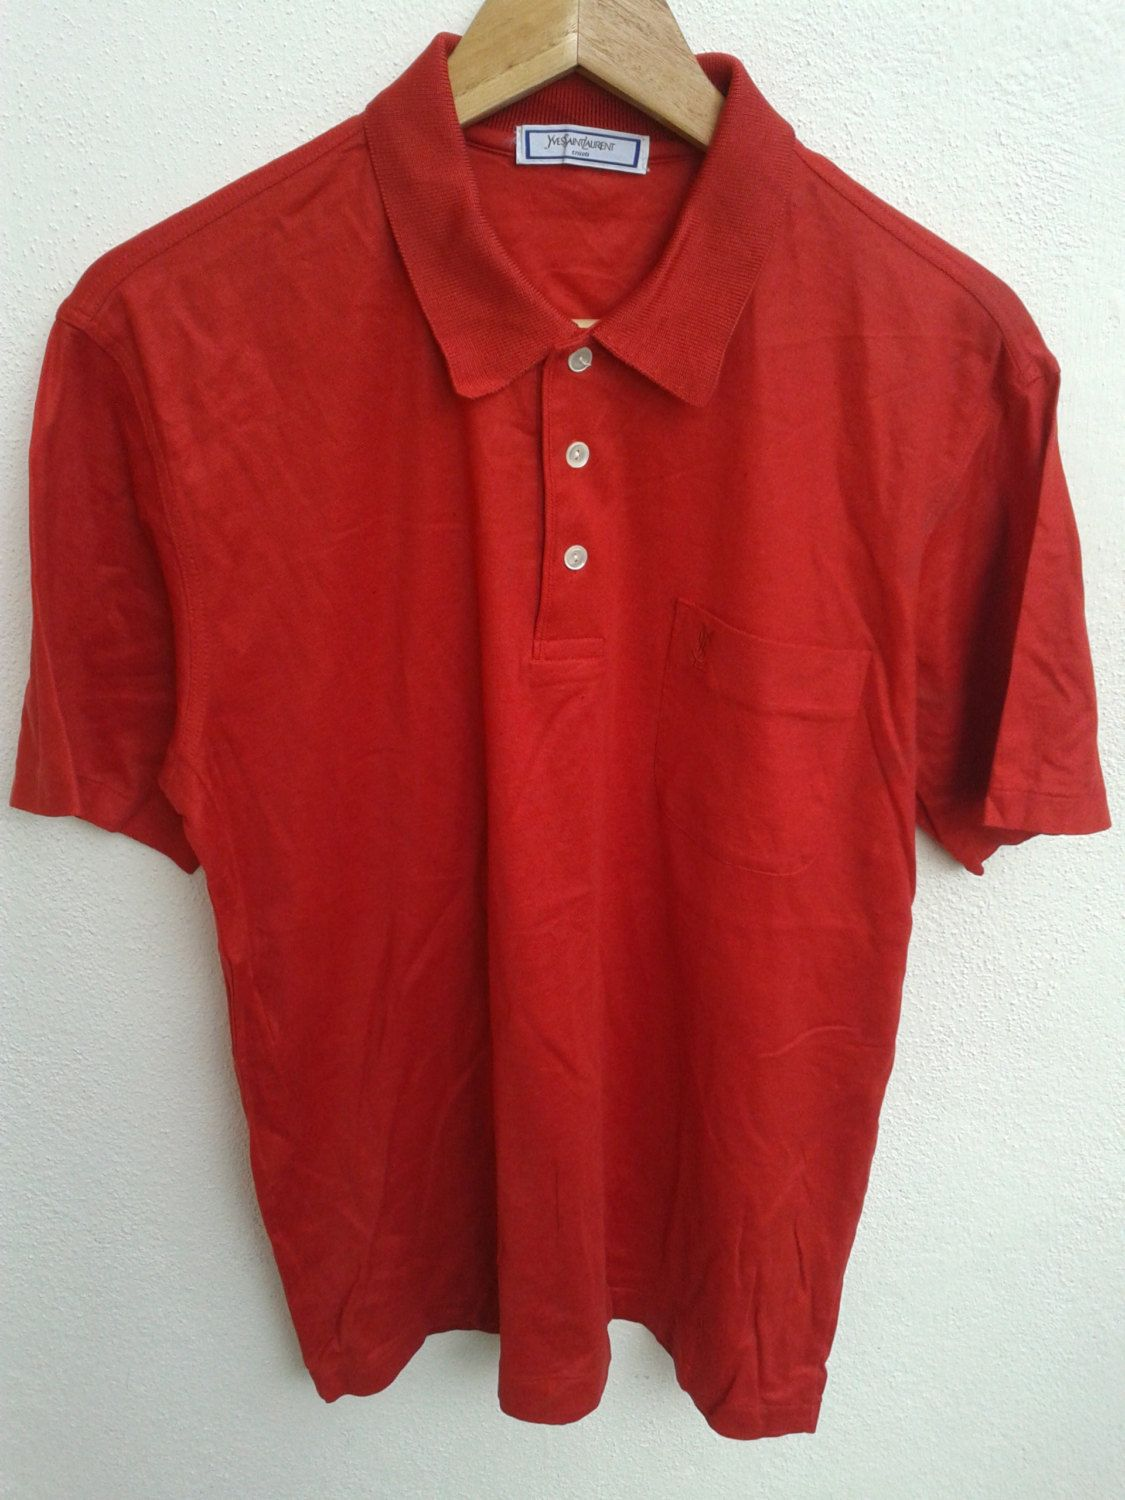 3fcbd91e SUMMER SALE YSL Yves Saint Laurent Tricots Red shirt Small Logo Pocket Swag  Polos Casual Shirt Vintage Retro Size M - $17.85 USD